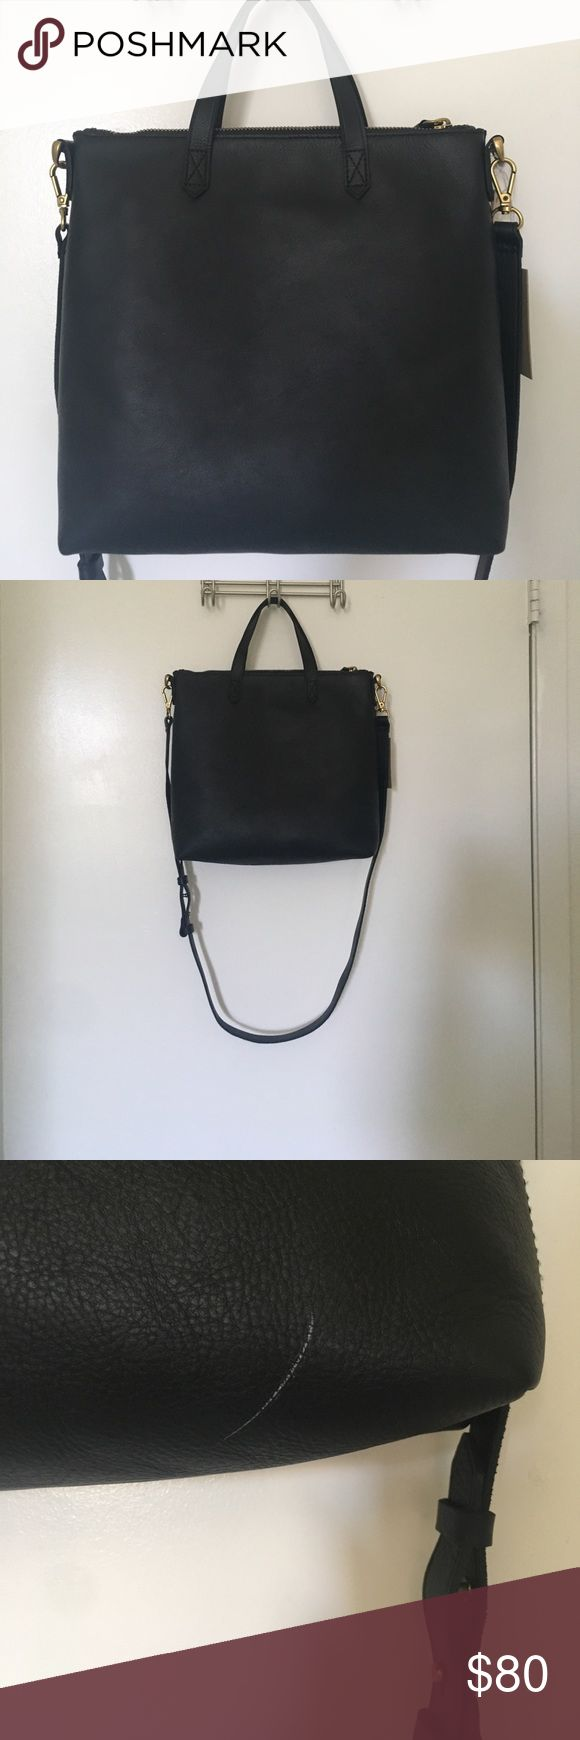 Madewell mini transport tote Black leather mini transport tote by Madewell. Zipper closure. Detachable shoulder strap. Pockets inside. Brand new, never used, tags still attached. Has white scratch that is 1.5in. long on bottom corner. Madewell Bags Mini Bags